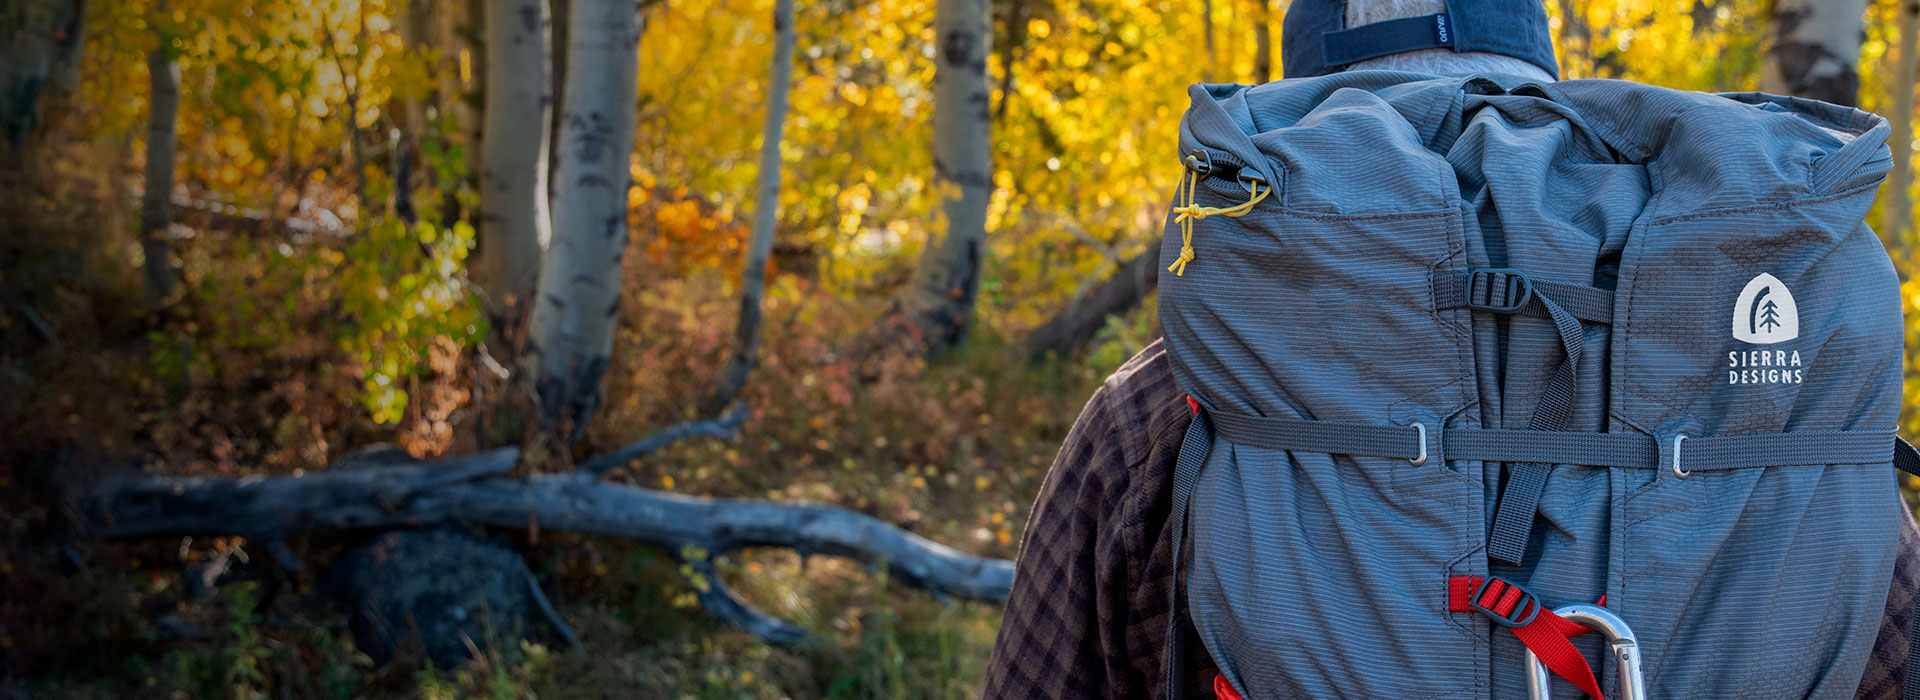 Man wearing a Sierra Designs Flex Capacitor backpack in the forest